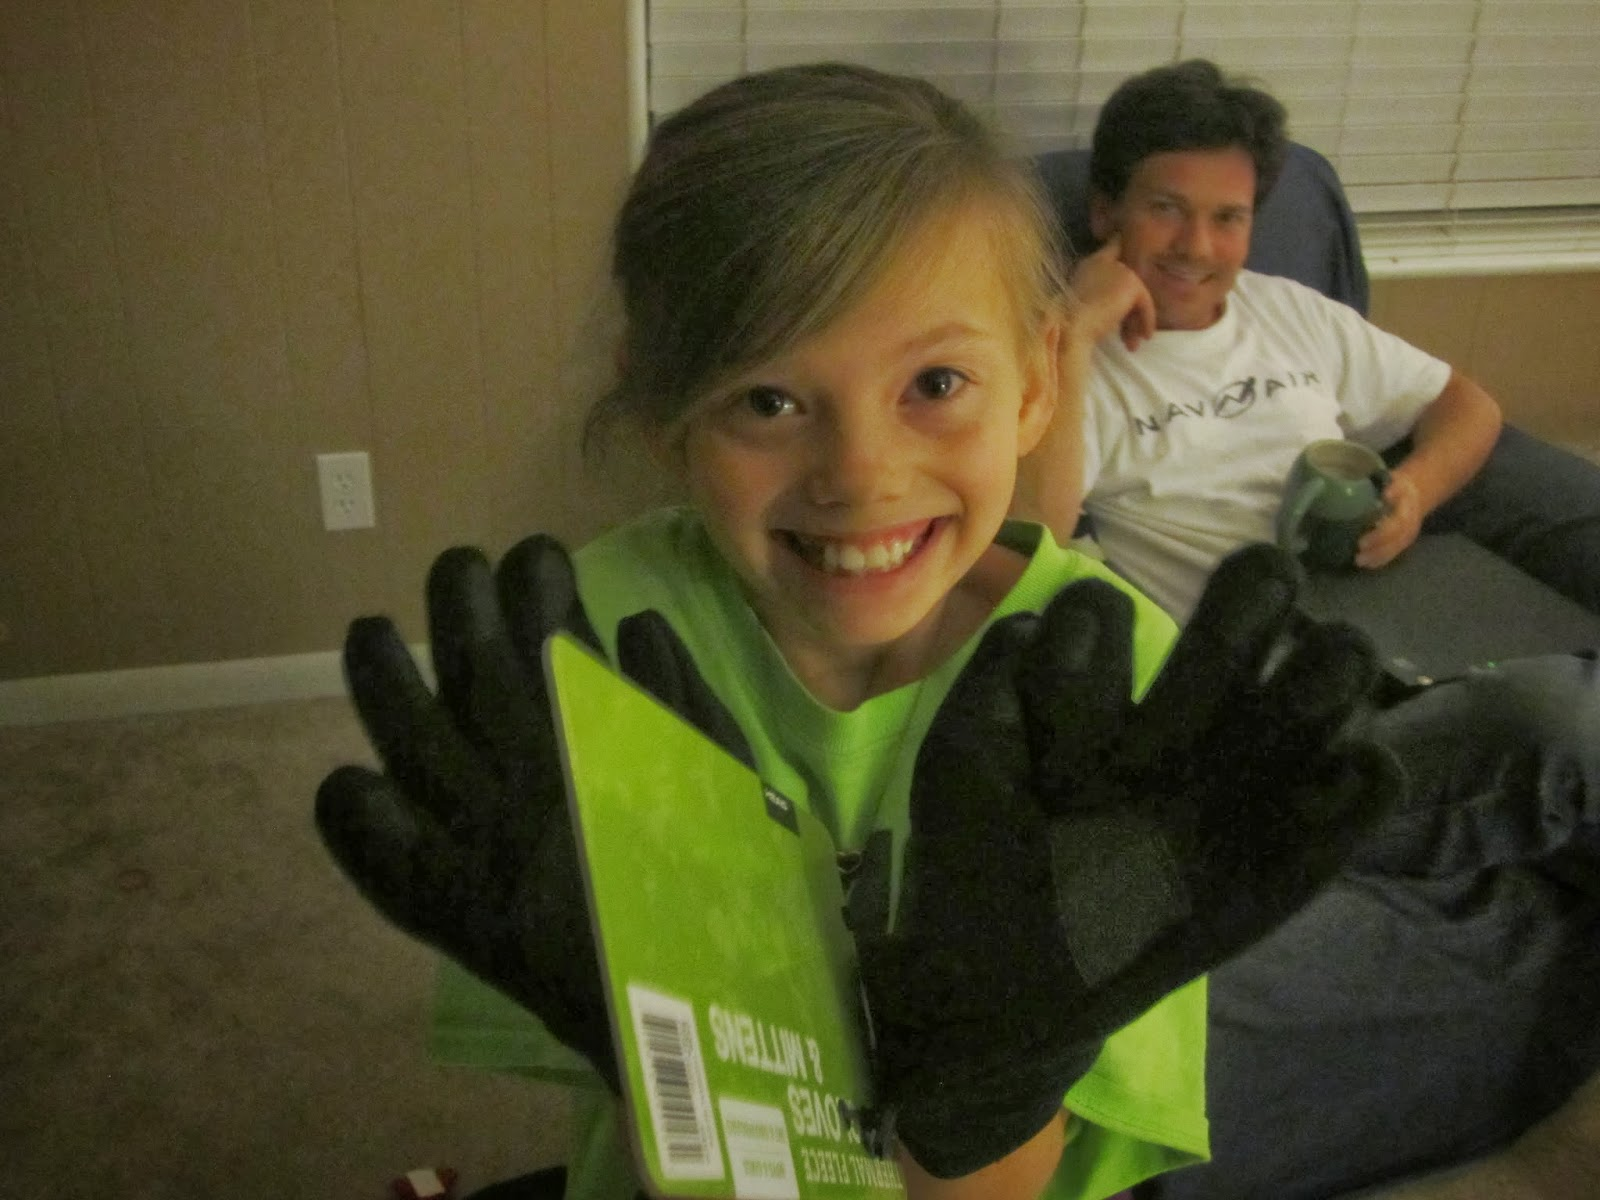 girl smiling, gloves